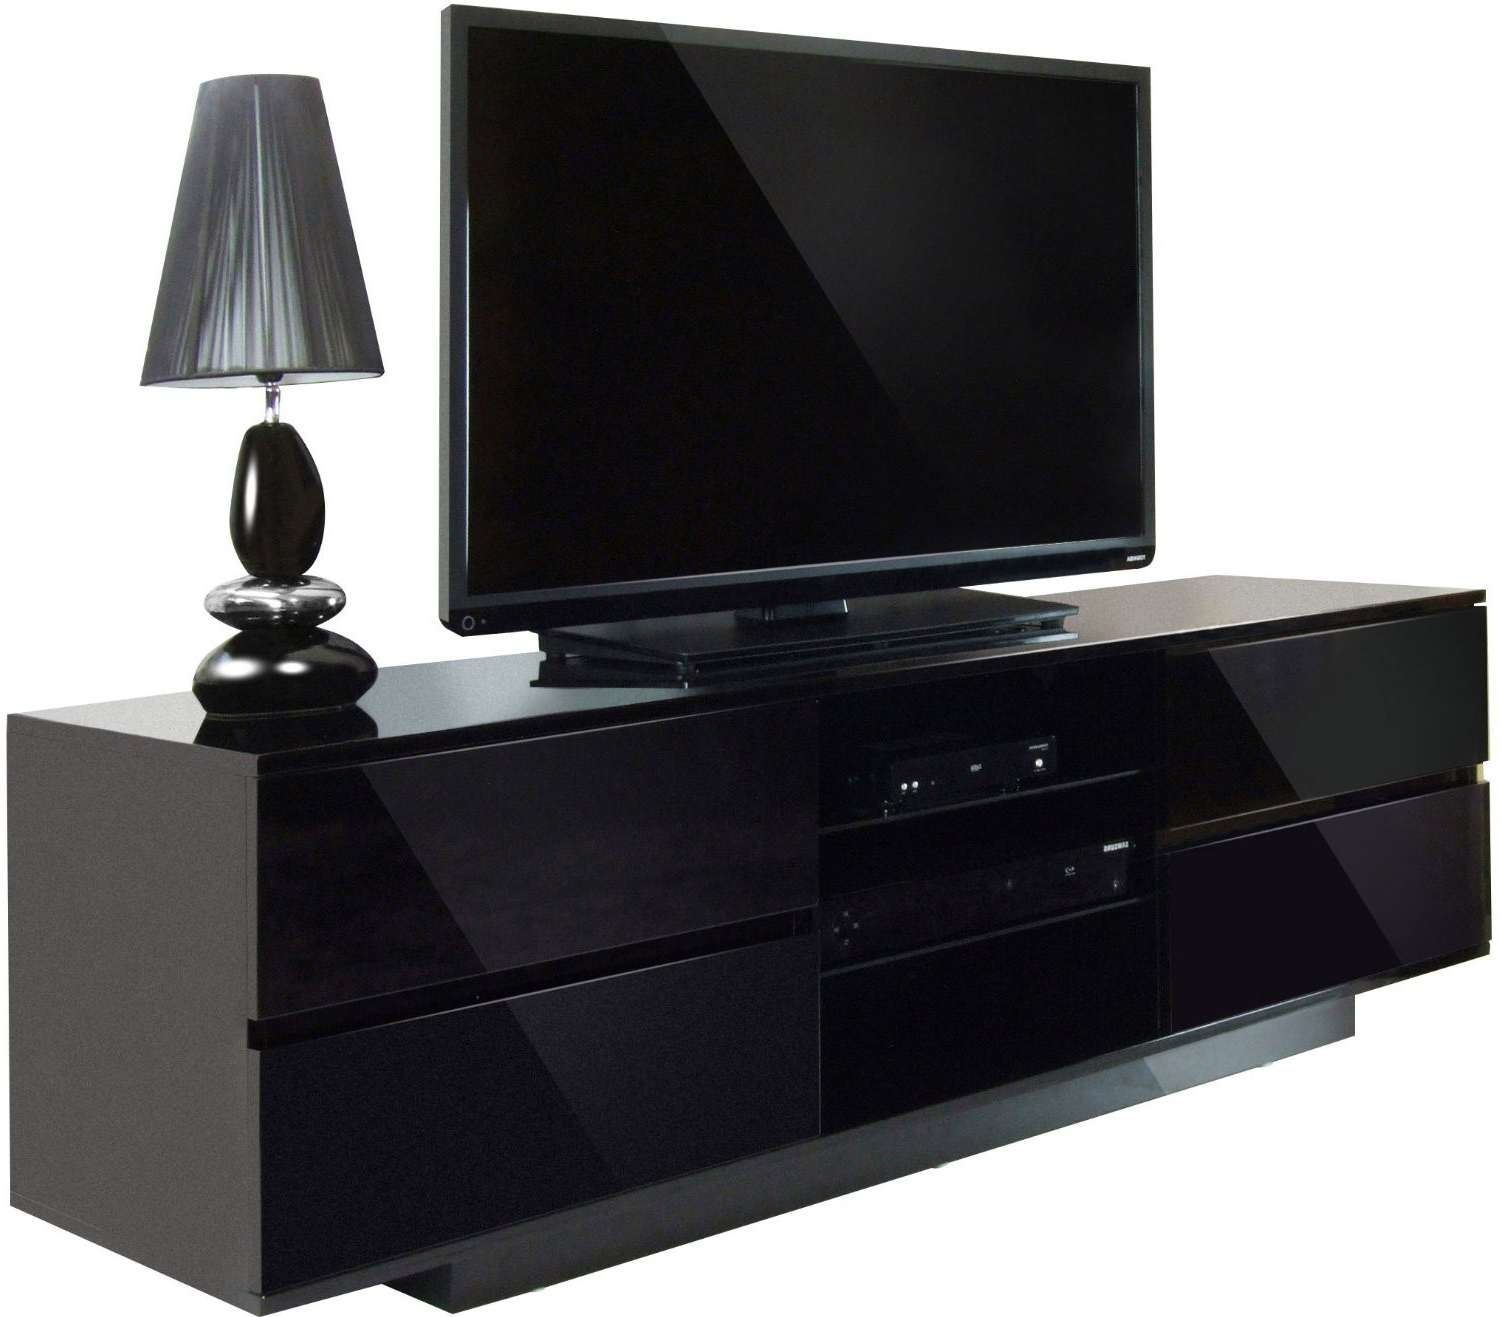 Gloss Black Tv Cabinet Avitus – Big Av With Regard To Black Tv Cabinets With Drawers (Gallery 7 of 20)